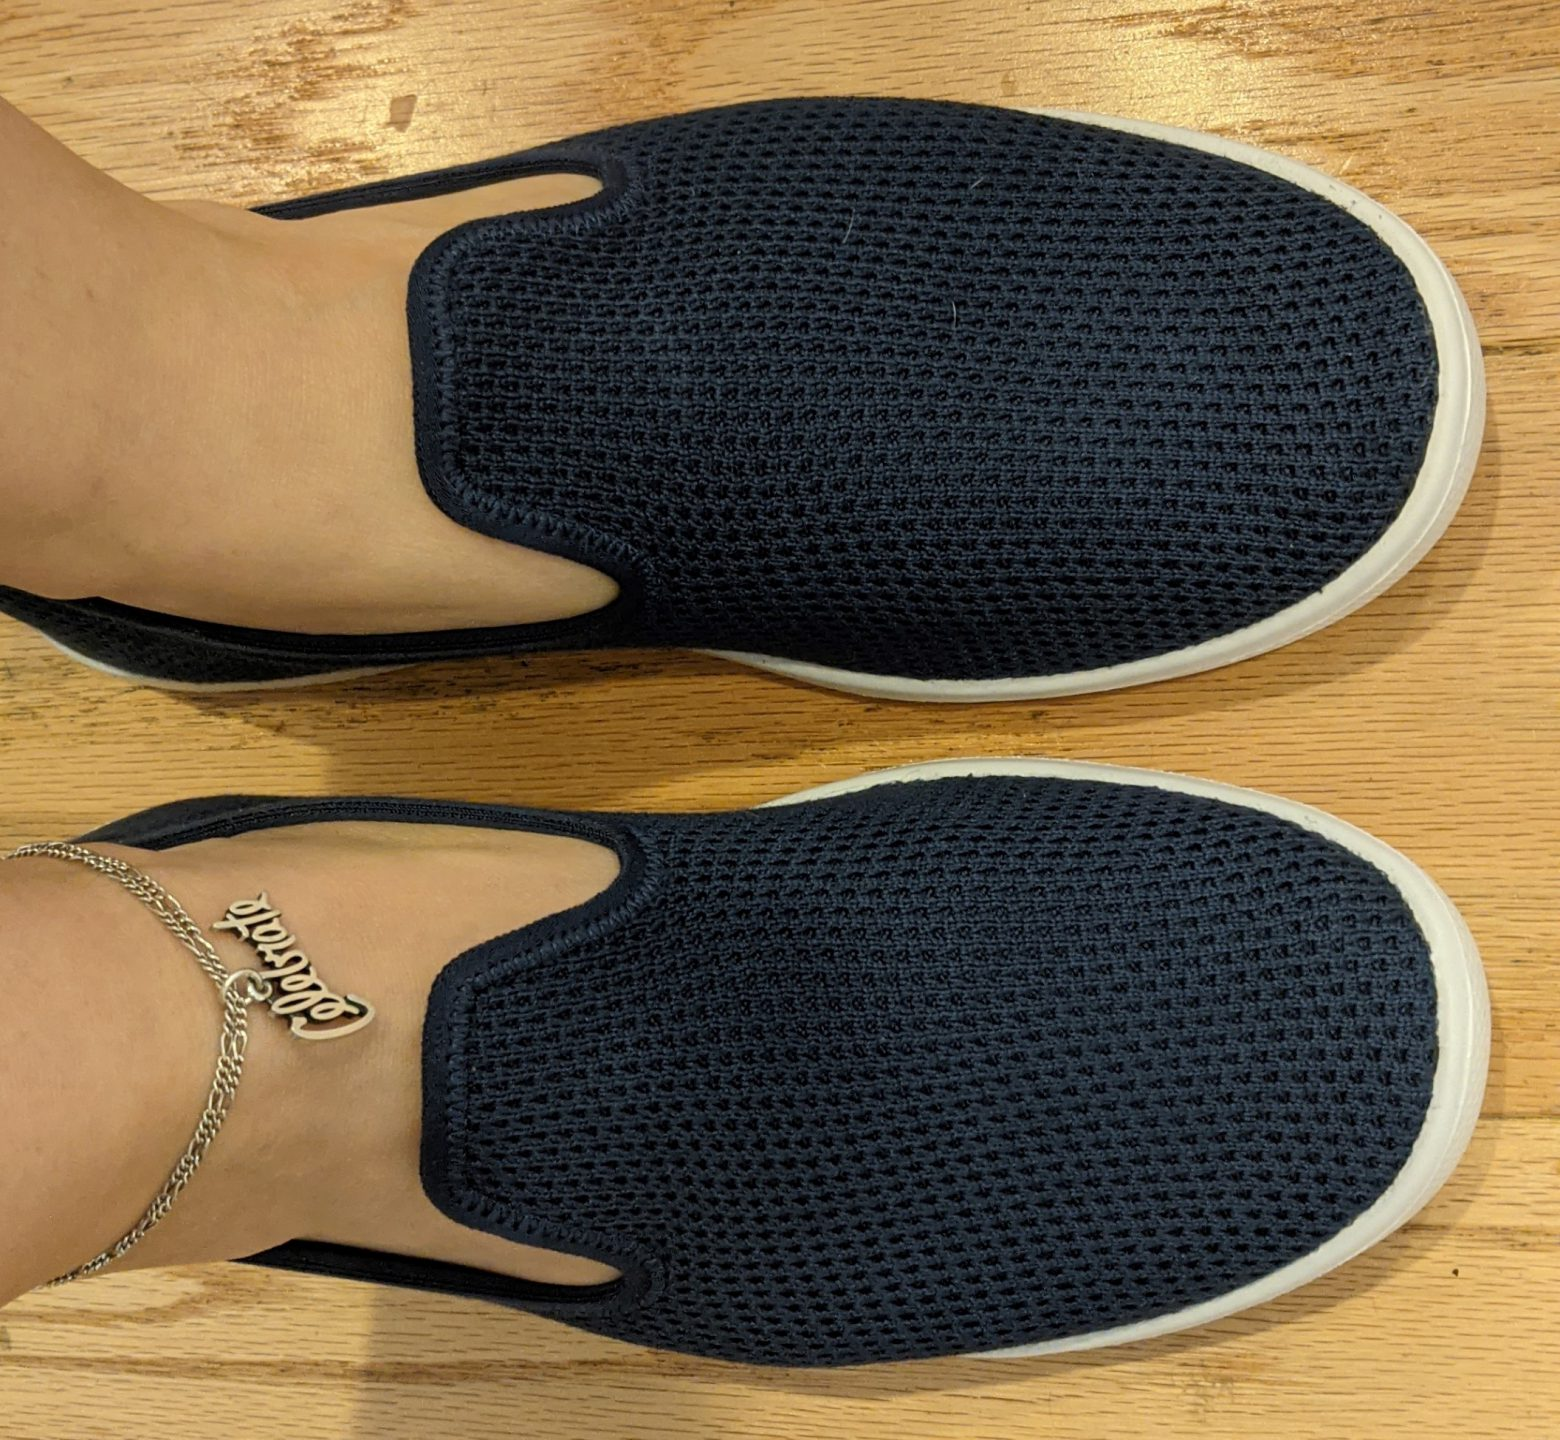 Product Review: Allbirds Shoes